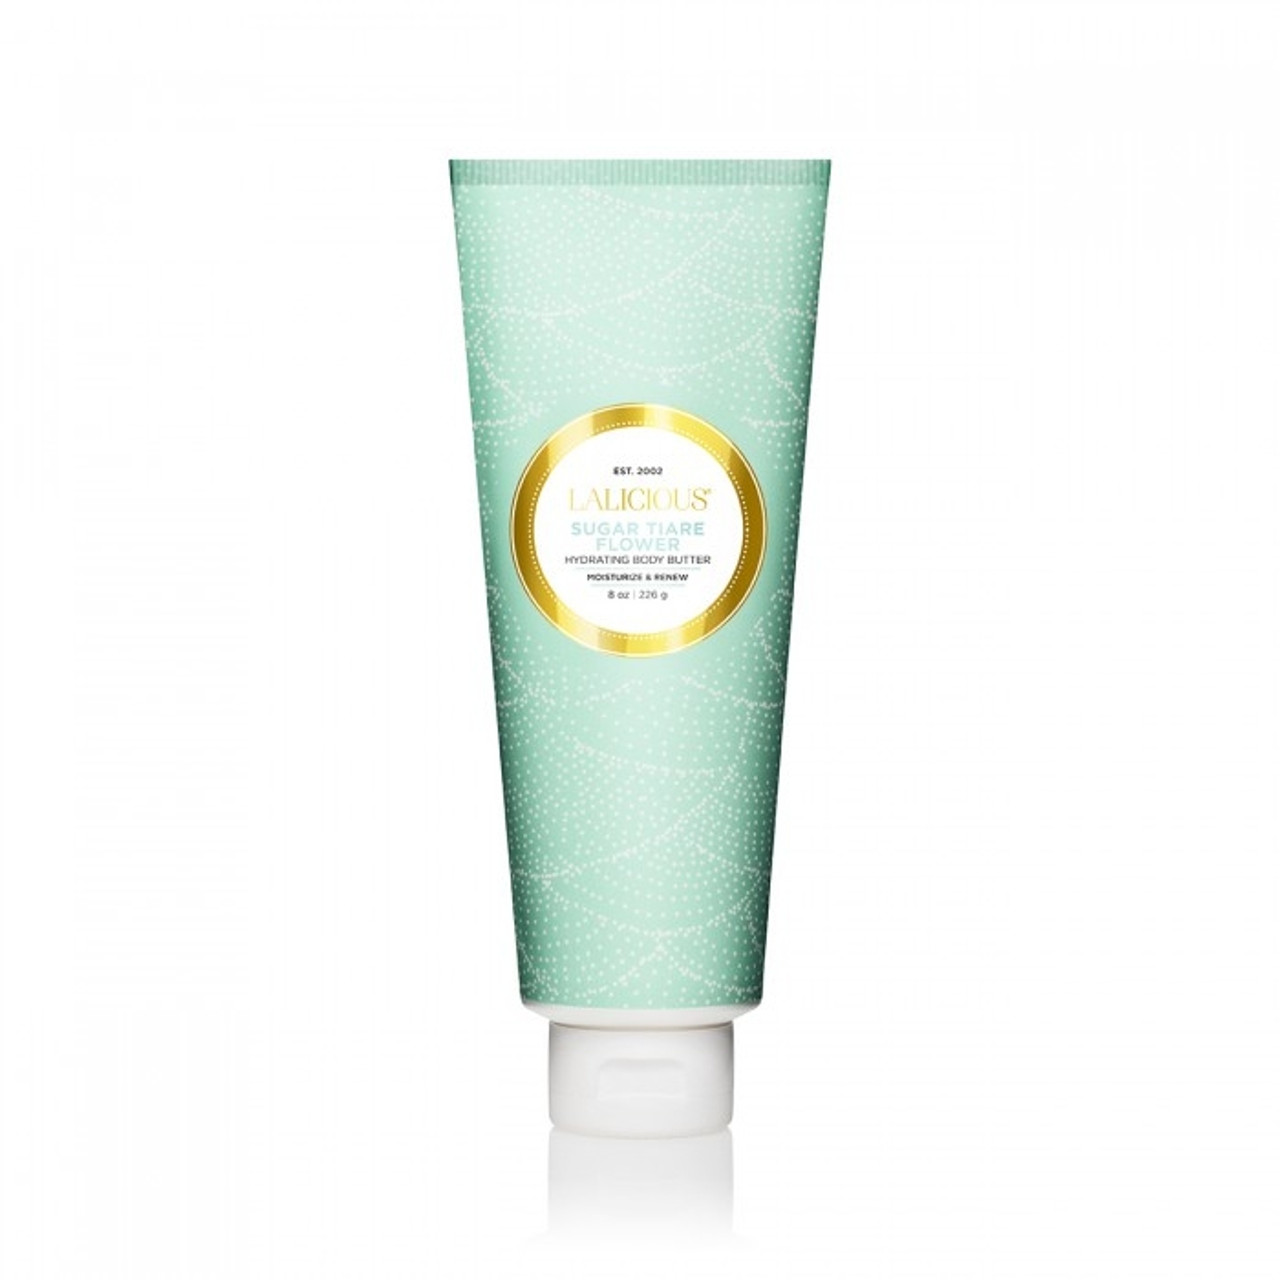 Lalicious Body Butter - Sugar Tiare Flower